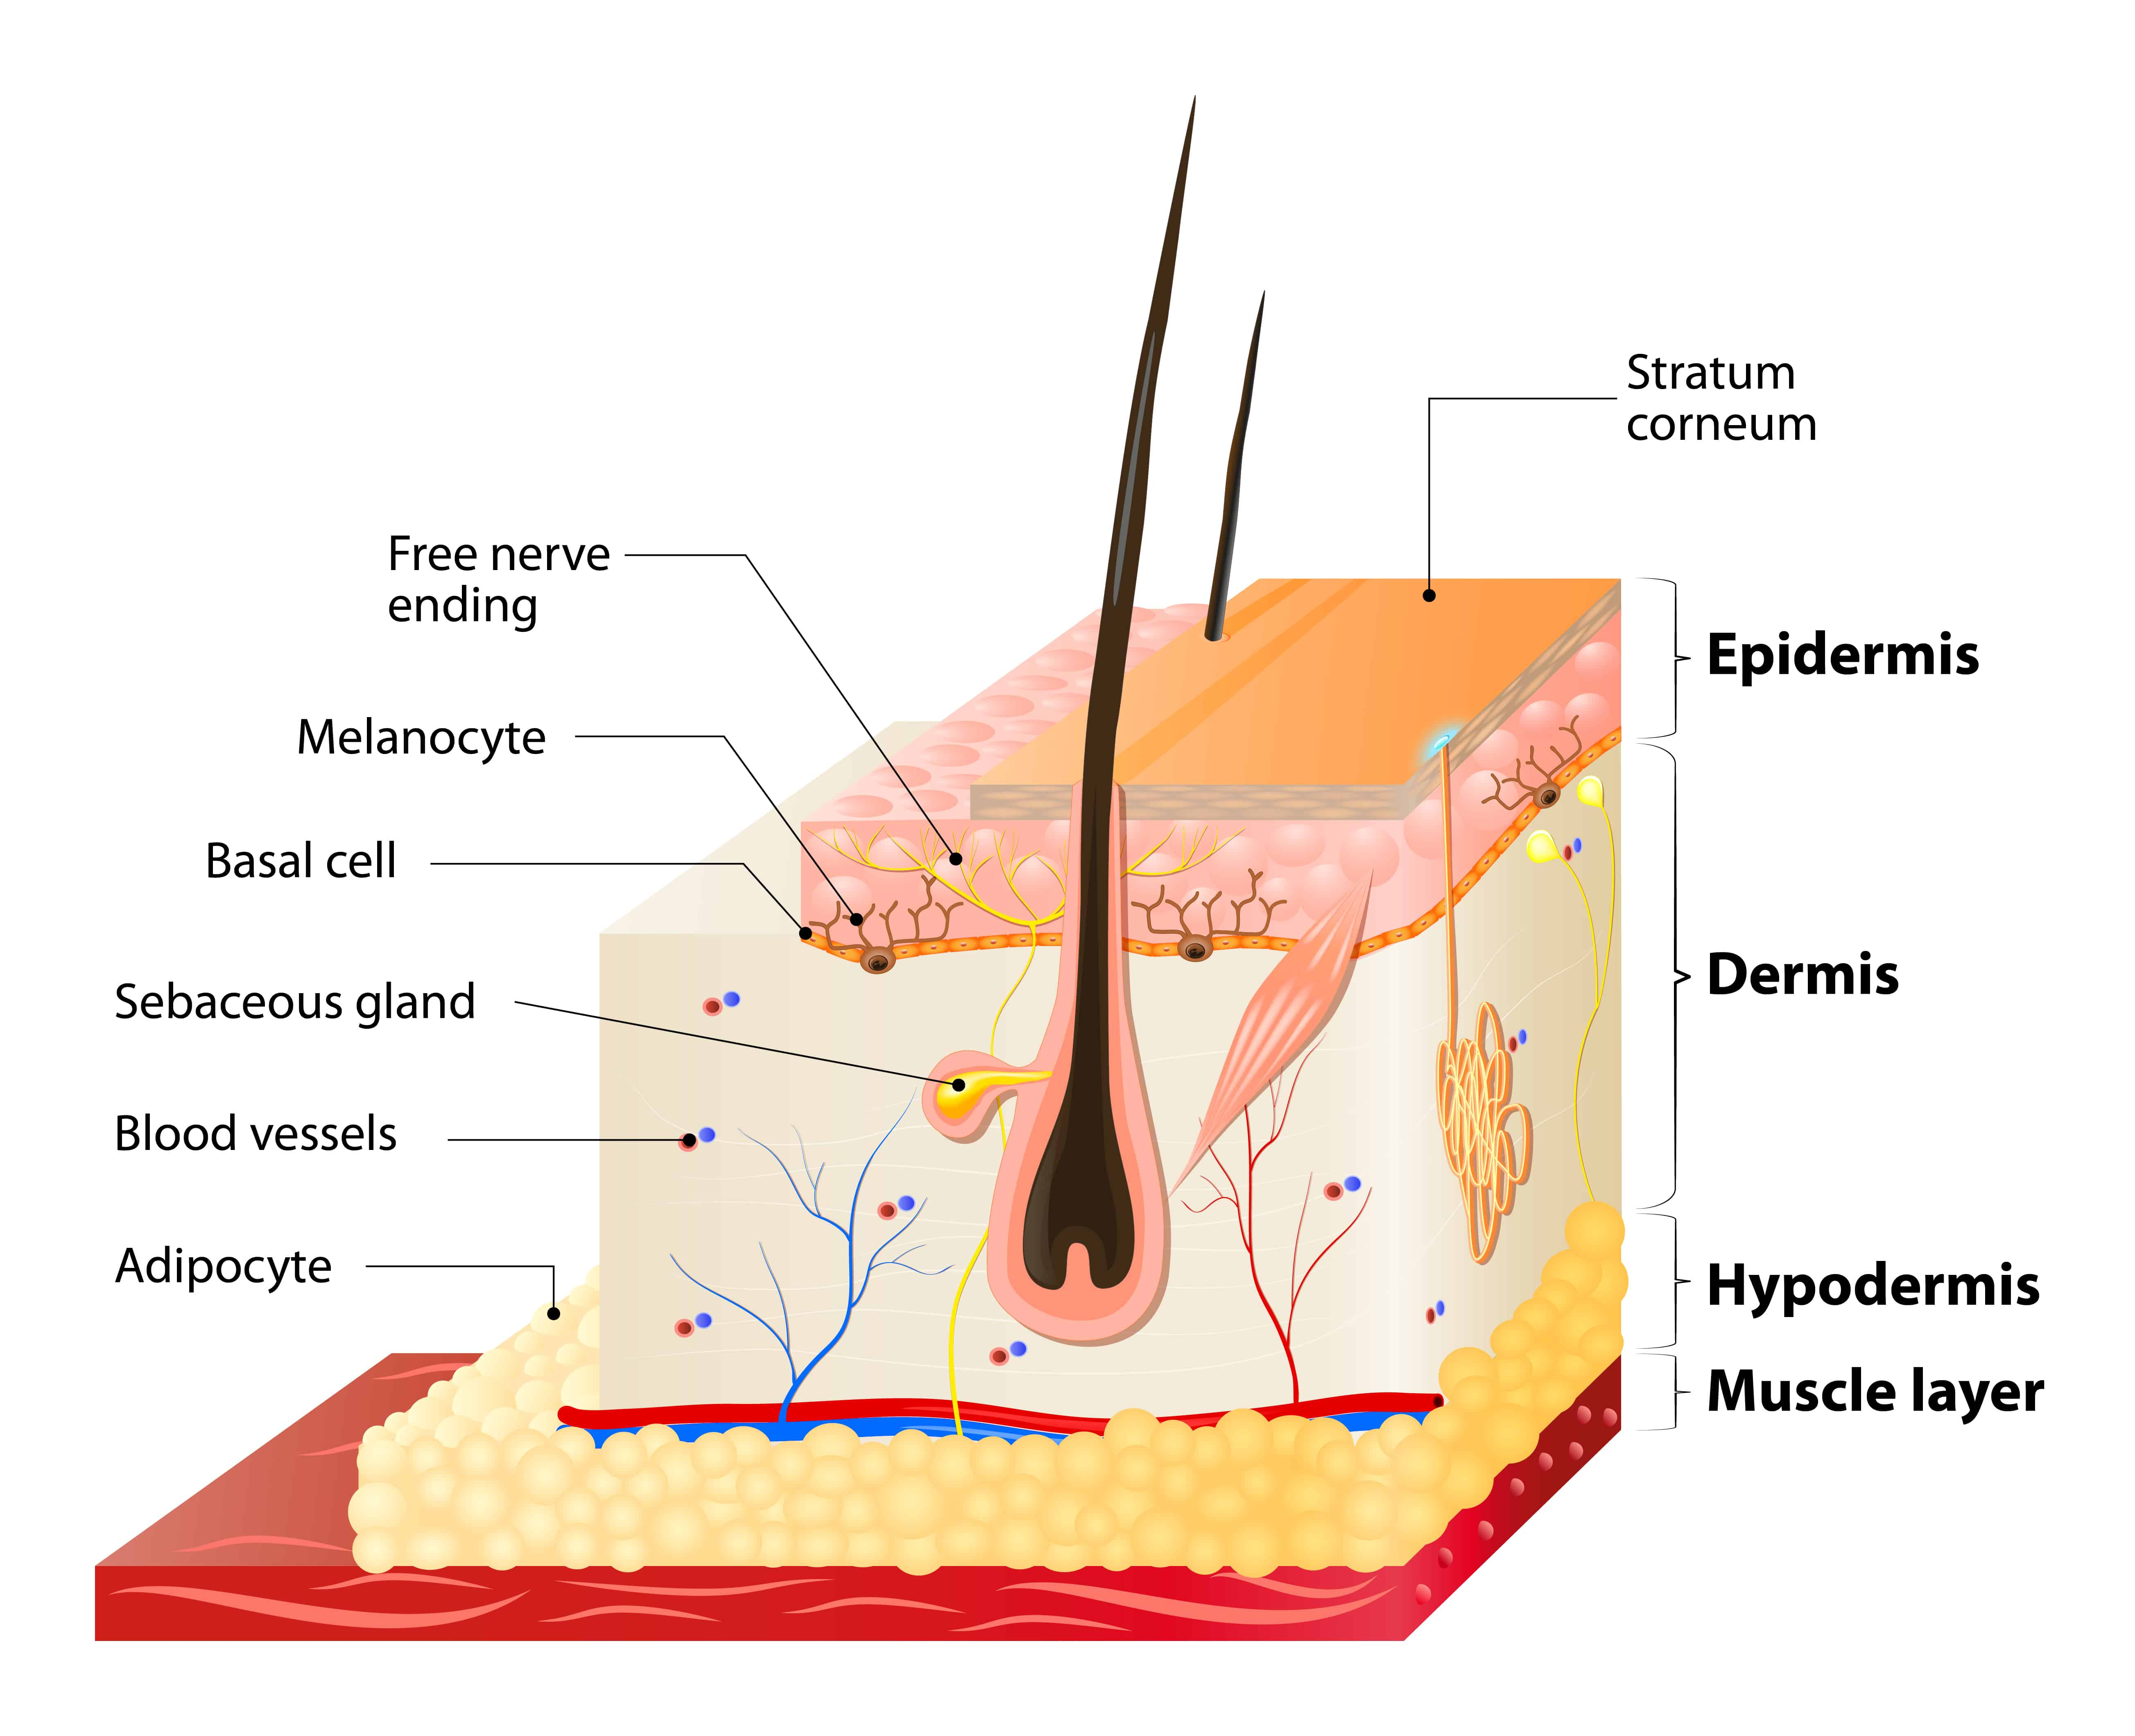 Microdermabrasion only affects the epidermis